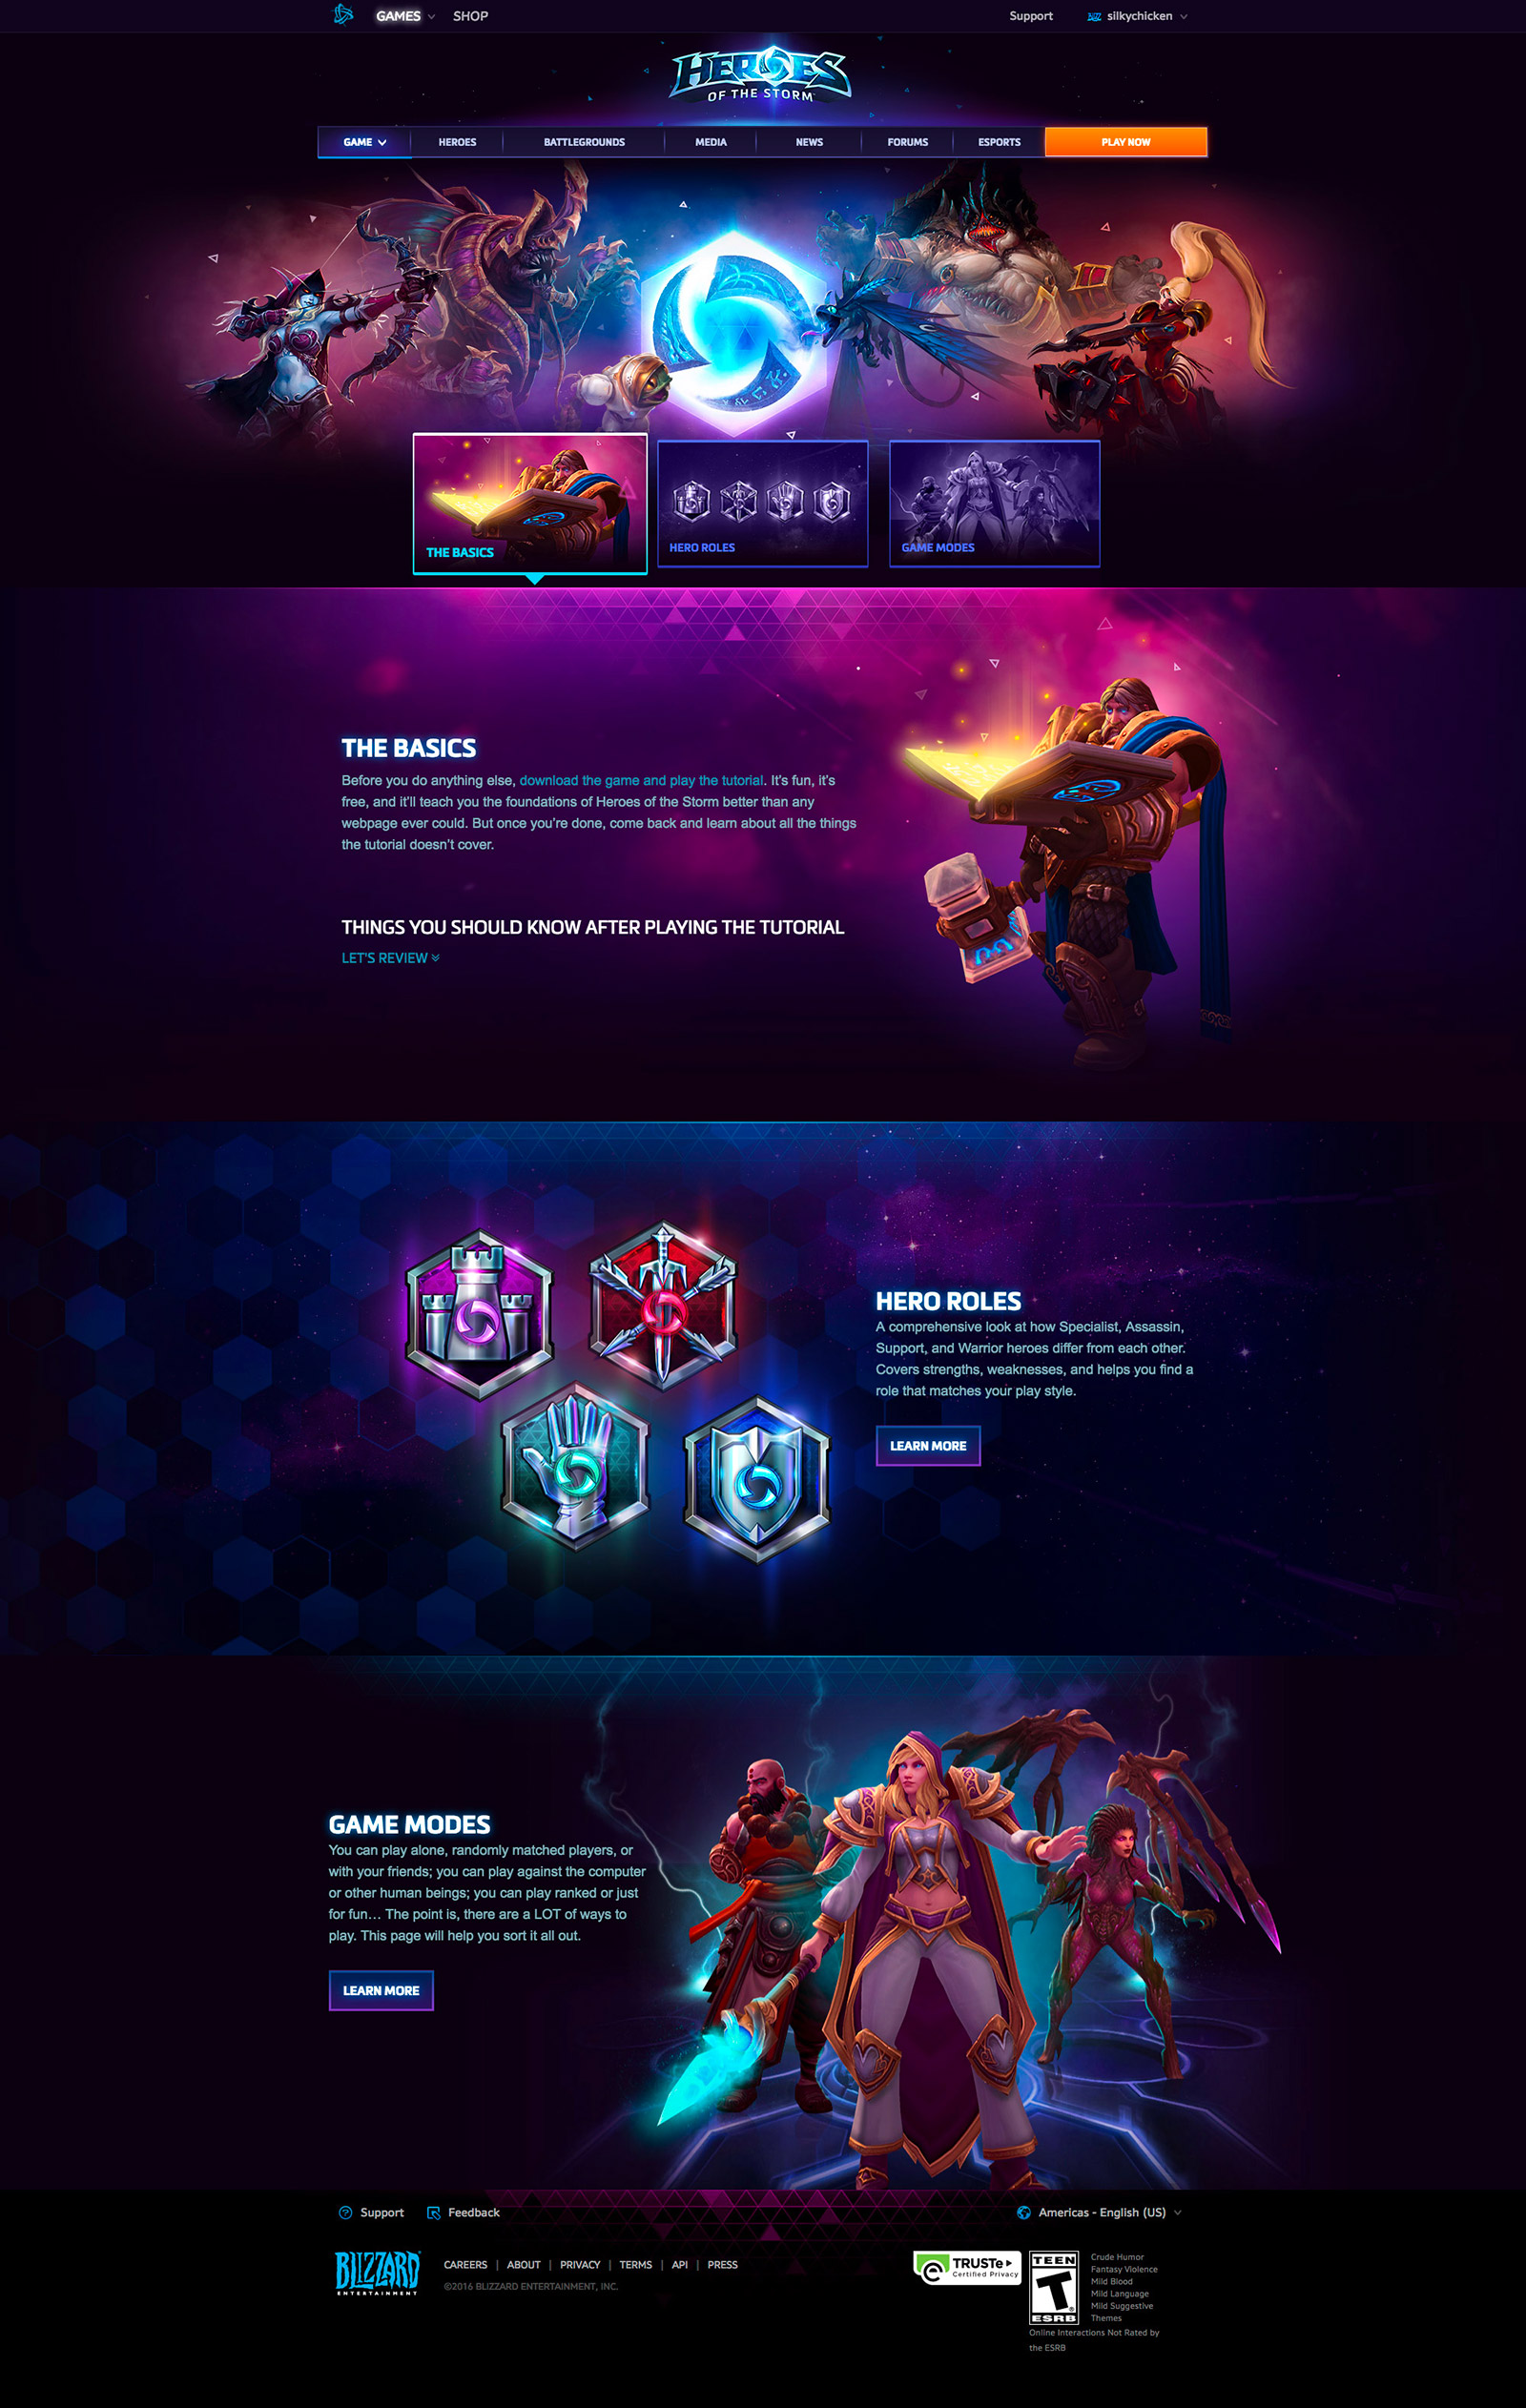 Heroes of the Storm: Game Guide